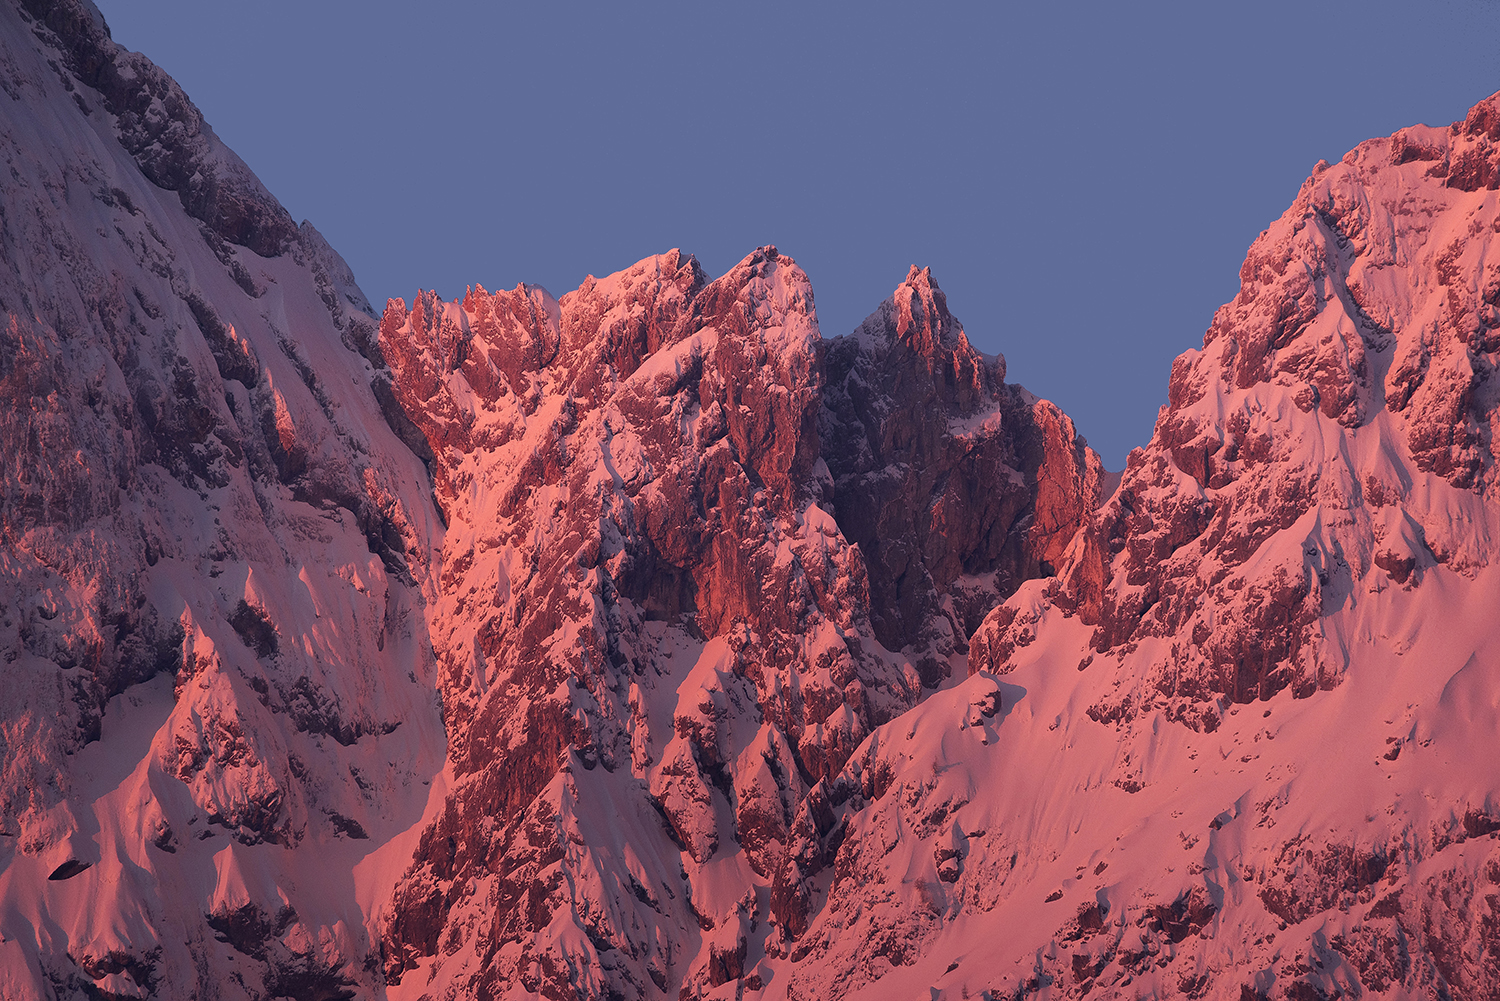 Majestic peaks in the morning example image 1